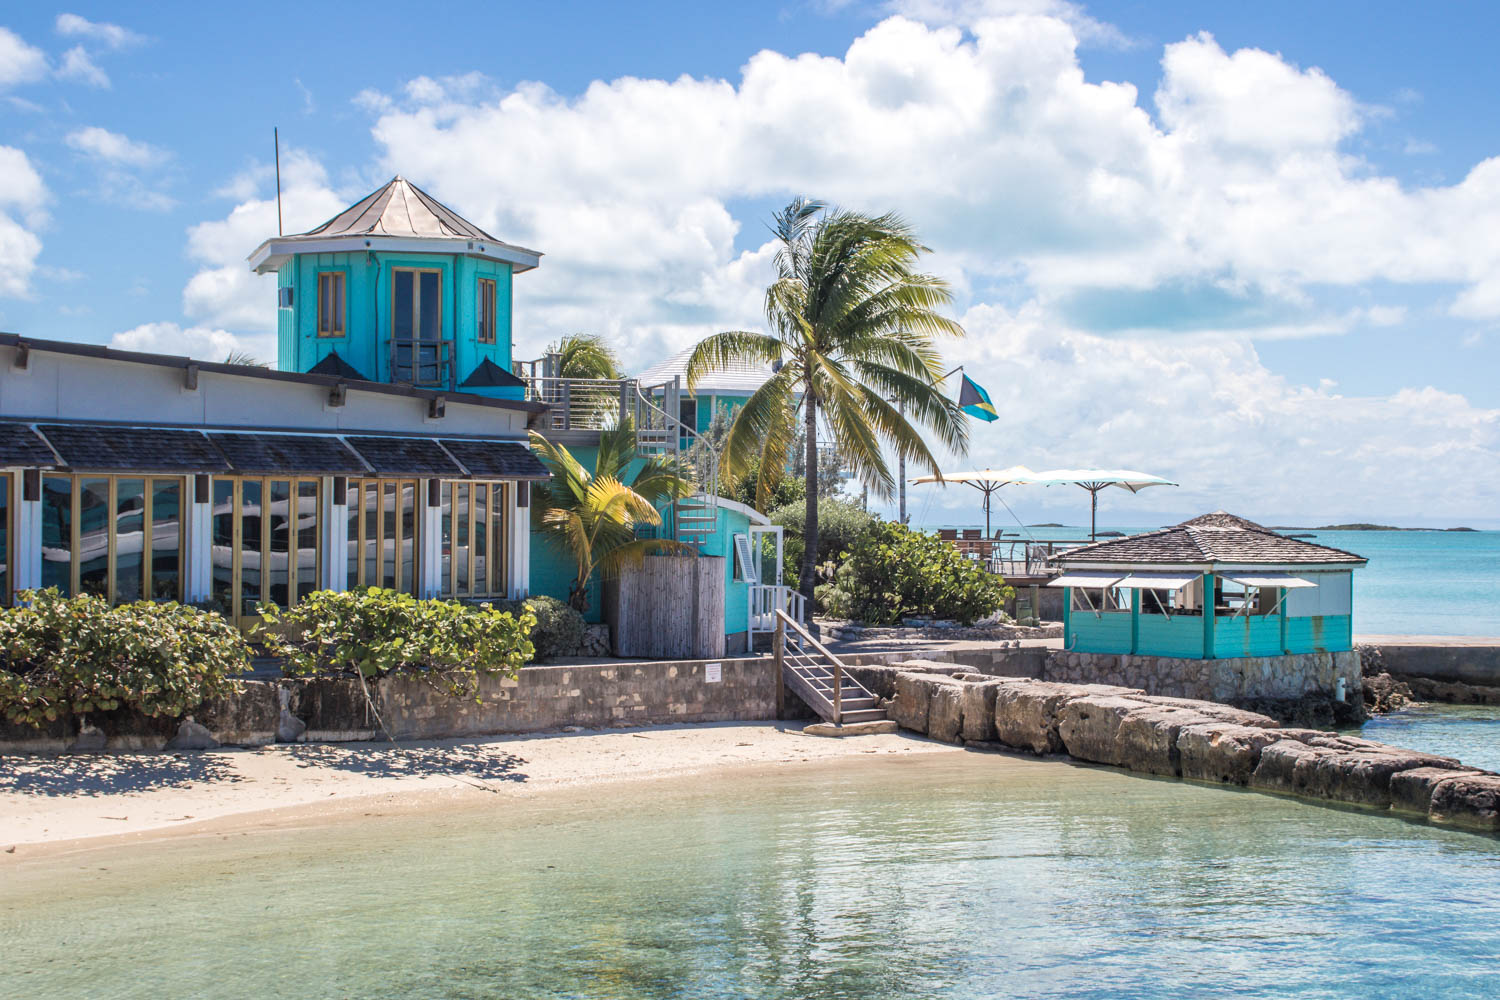 Staniel Cay Yacht Club Bahamas is a luxury hotel in the Exumas Staniel Cay and located close to the Bahamas Swimming Pigs at Big Major Cay